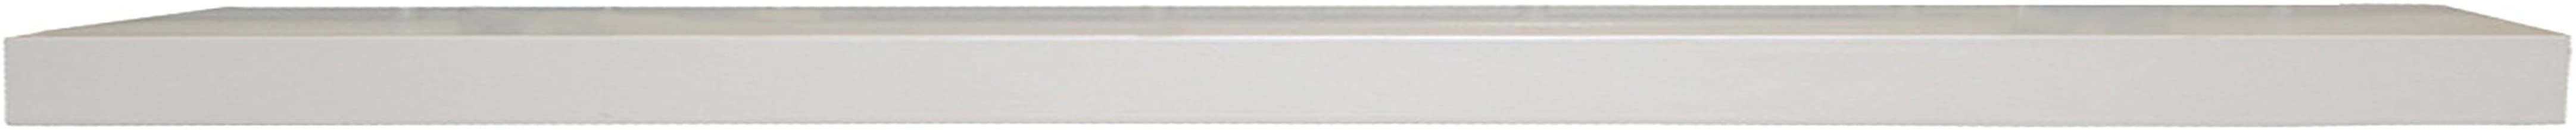 InPlace Shelving 60 in W x 8 in D x 1.25 in H Slimline Floating Wall Shelf with Invisible Brackets, White 9084672, x x